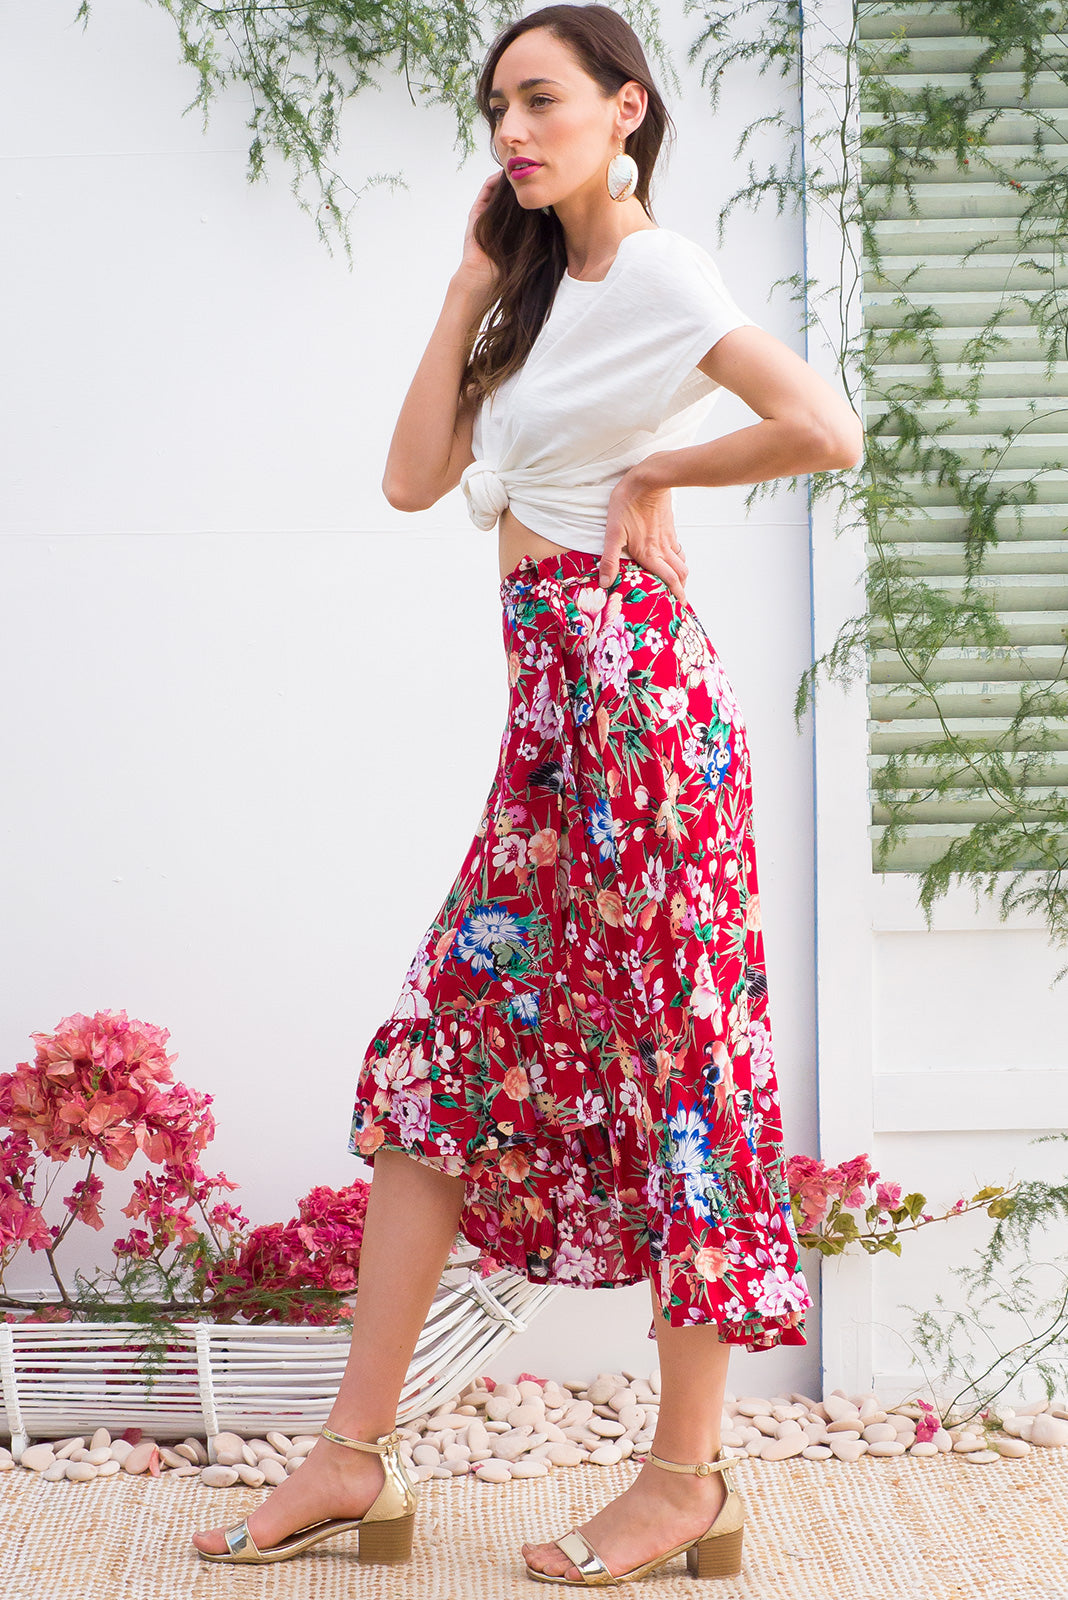 Highlight Bordeaux Red Wrap Skirt, Hi-low Hemline skirt with Frill Detail and vibrant floral print